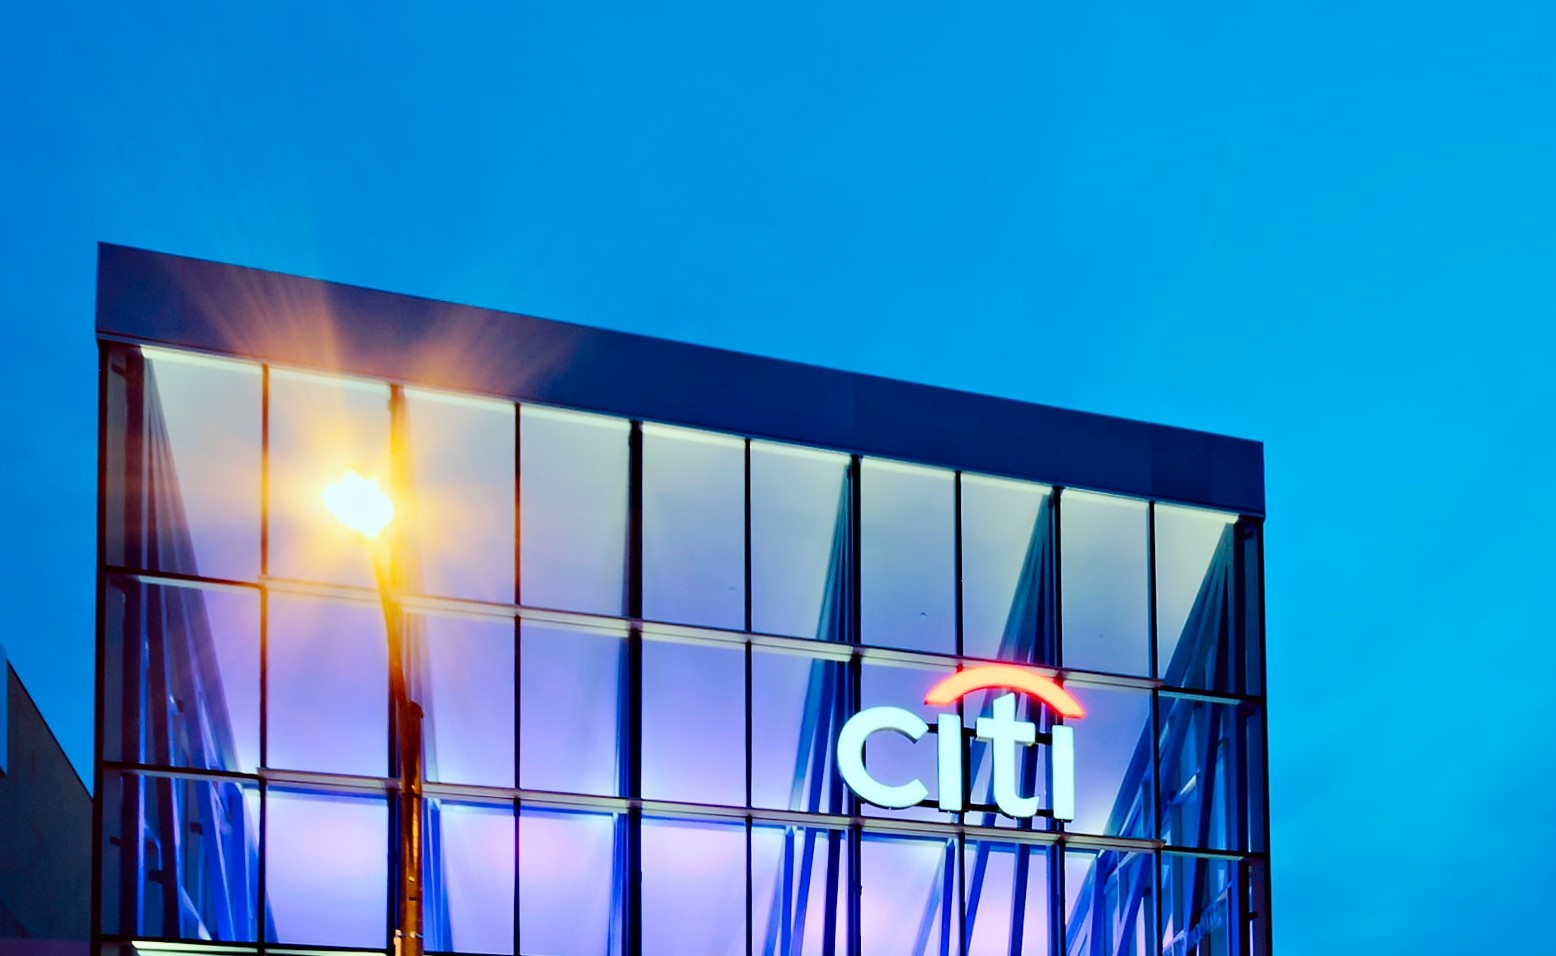 As Citi hires thousands of people, it's also considering cuts